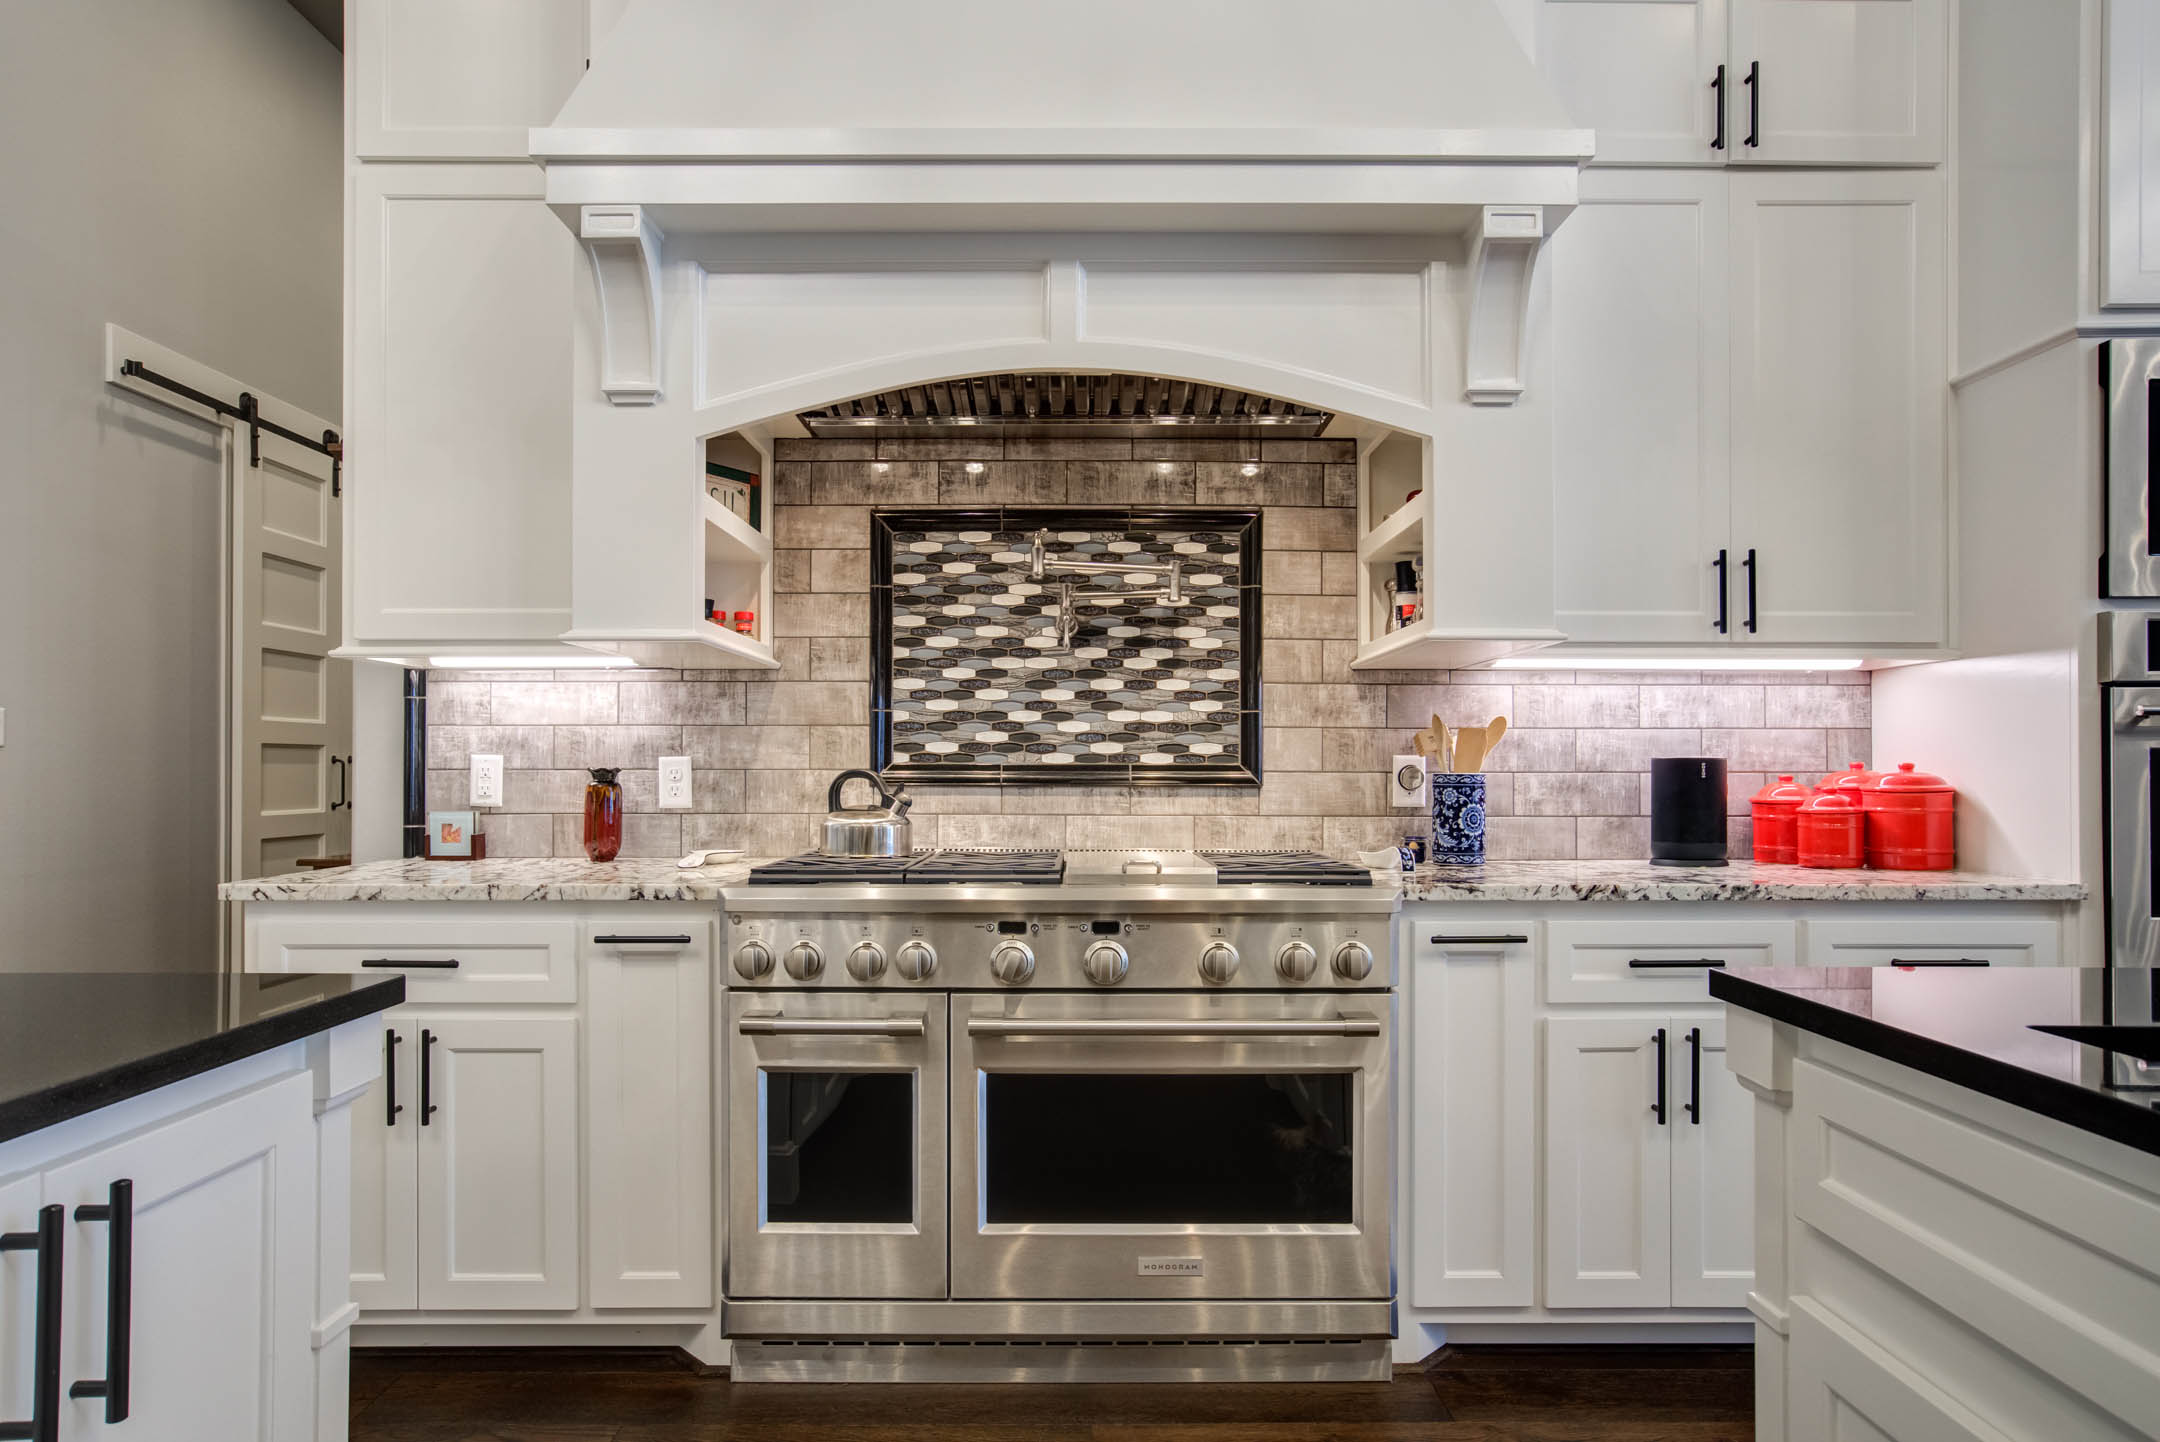 Stove area with beautiful tile treatment in kitchen of custom home in Lubbock.